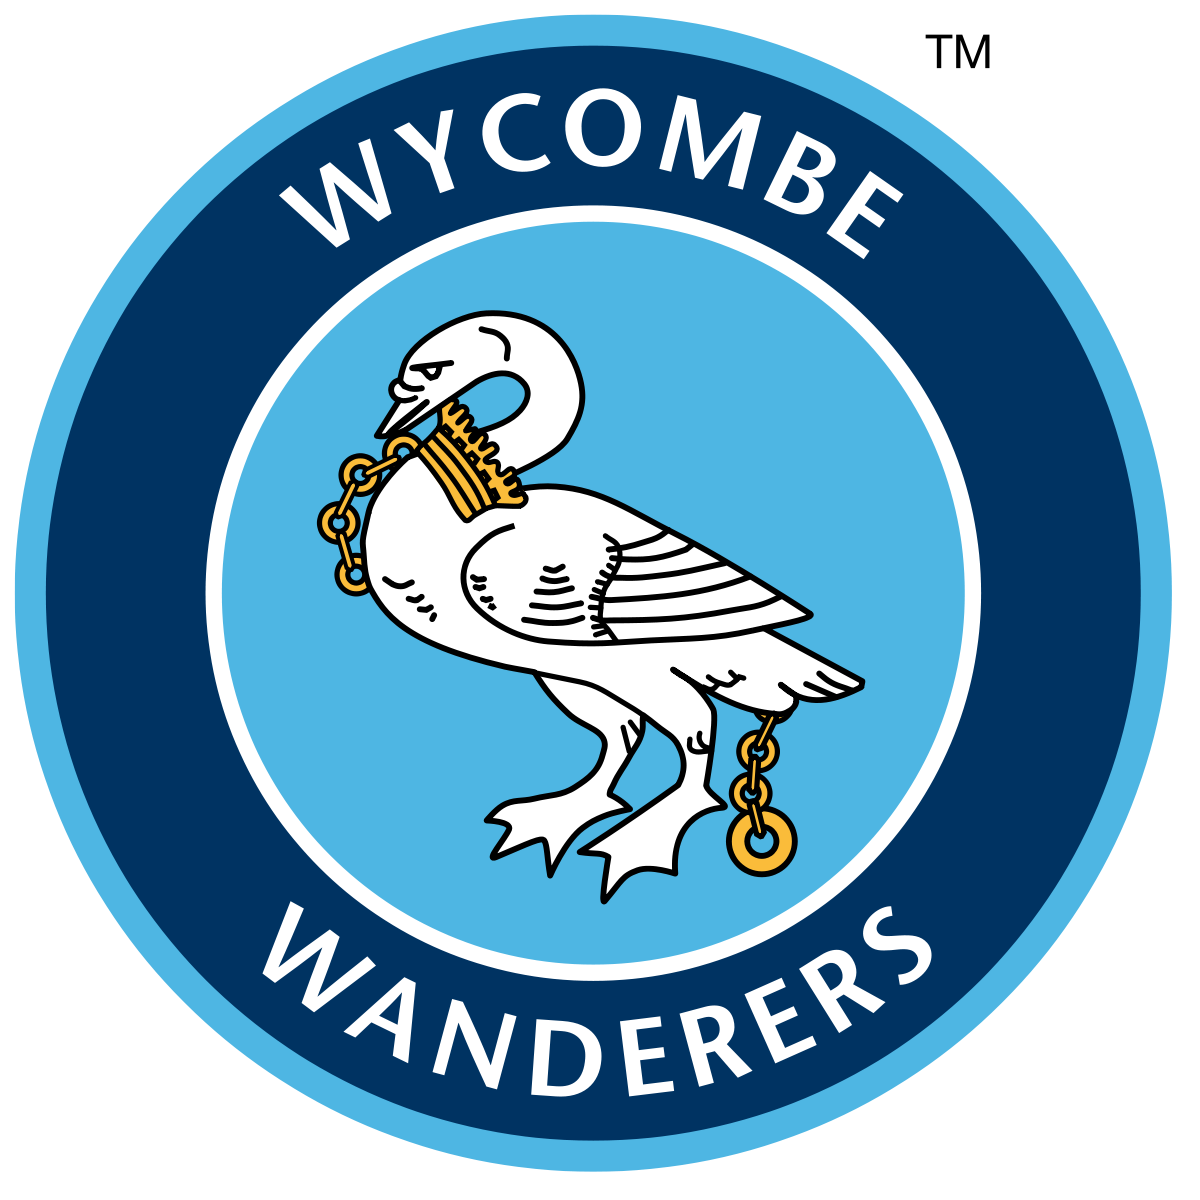 Wycombe Wanderers crest